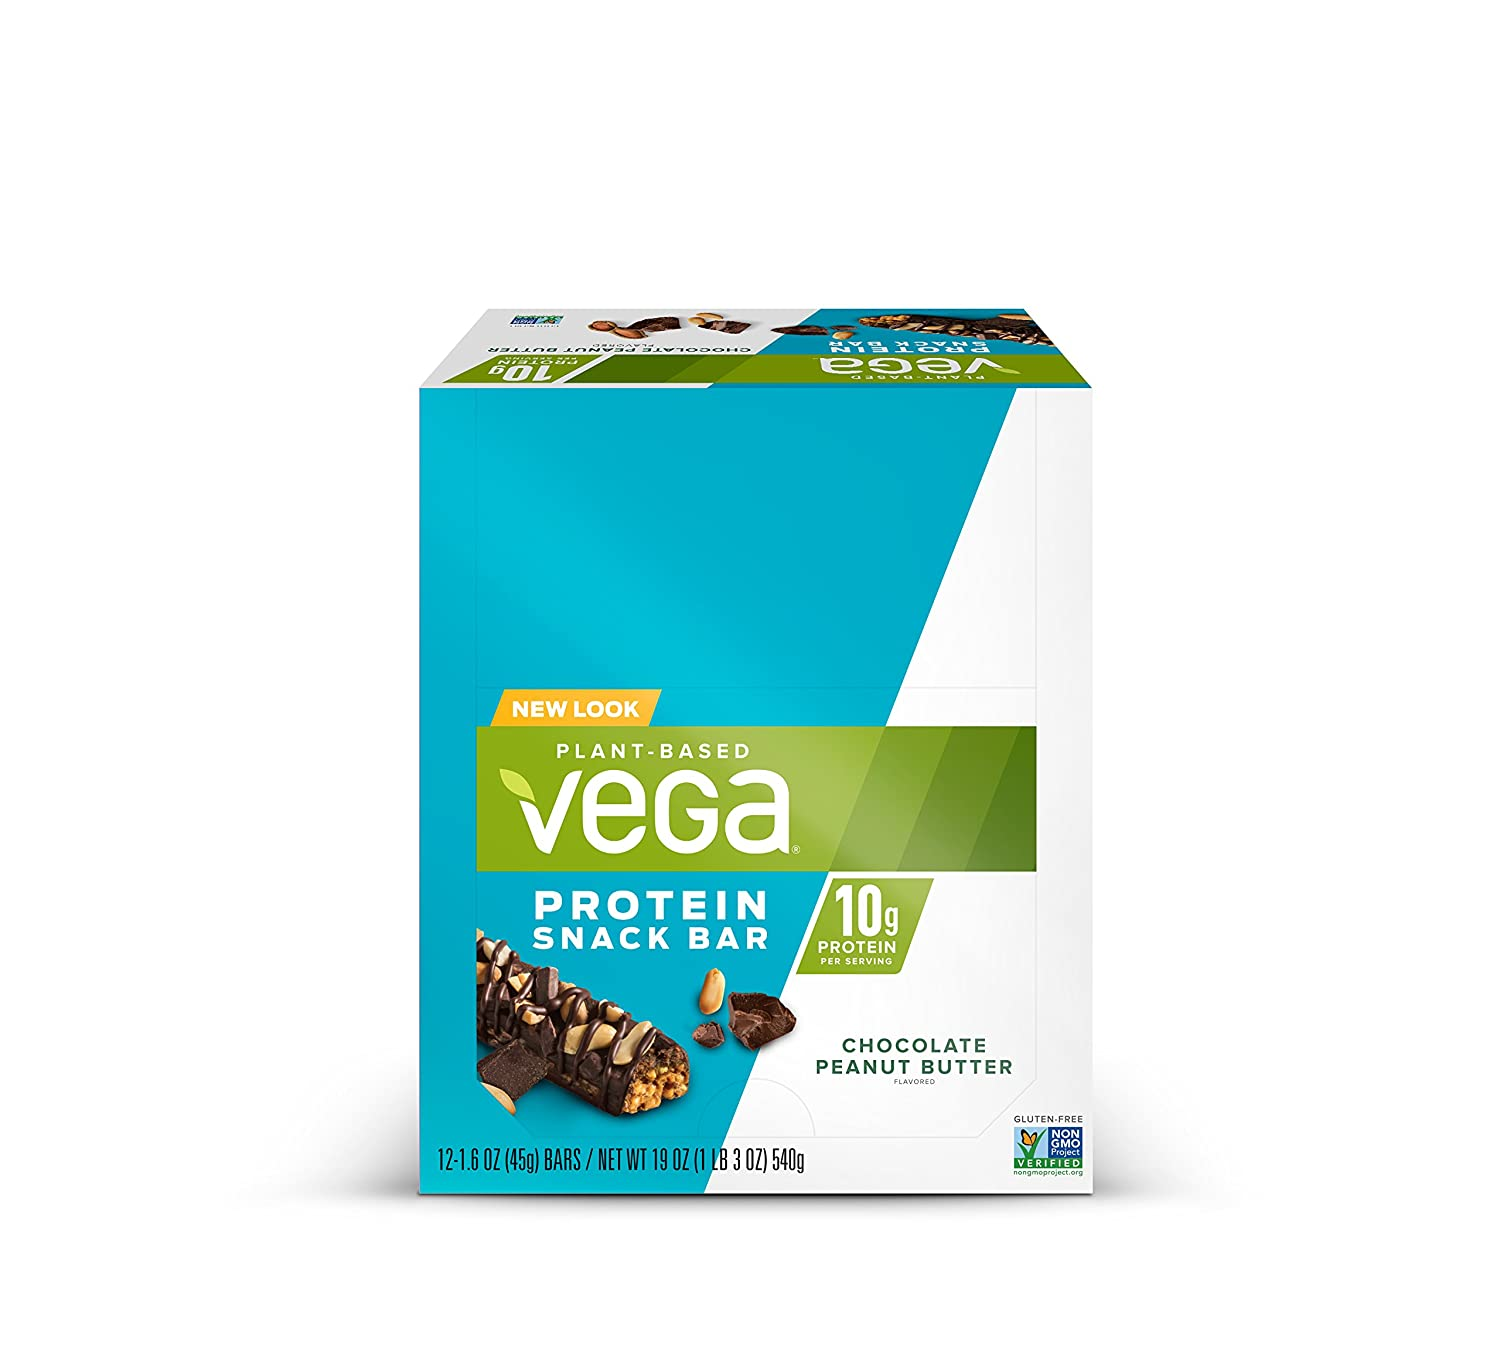 The Vega Protein Snack Bar Chocolate Peanut Butter travel product recommended by Stefanie Almond on Pretty Progressive.